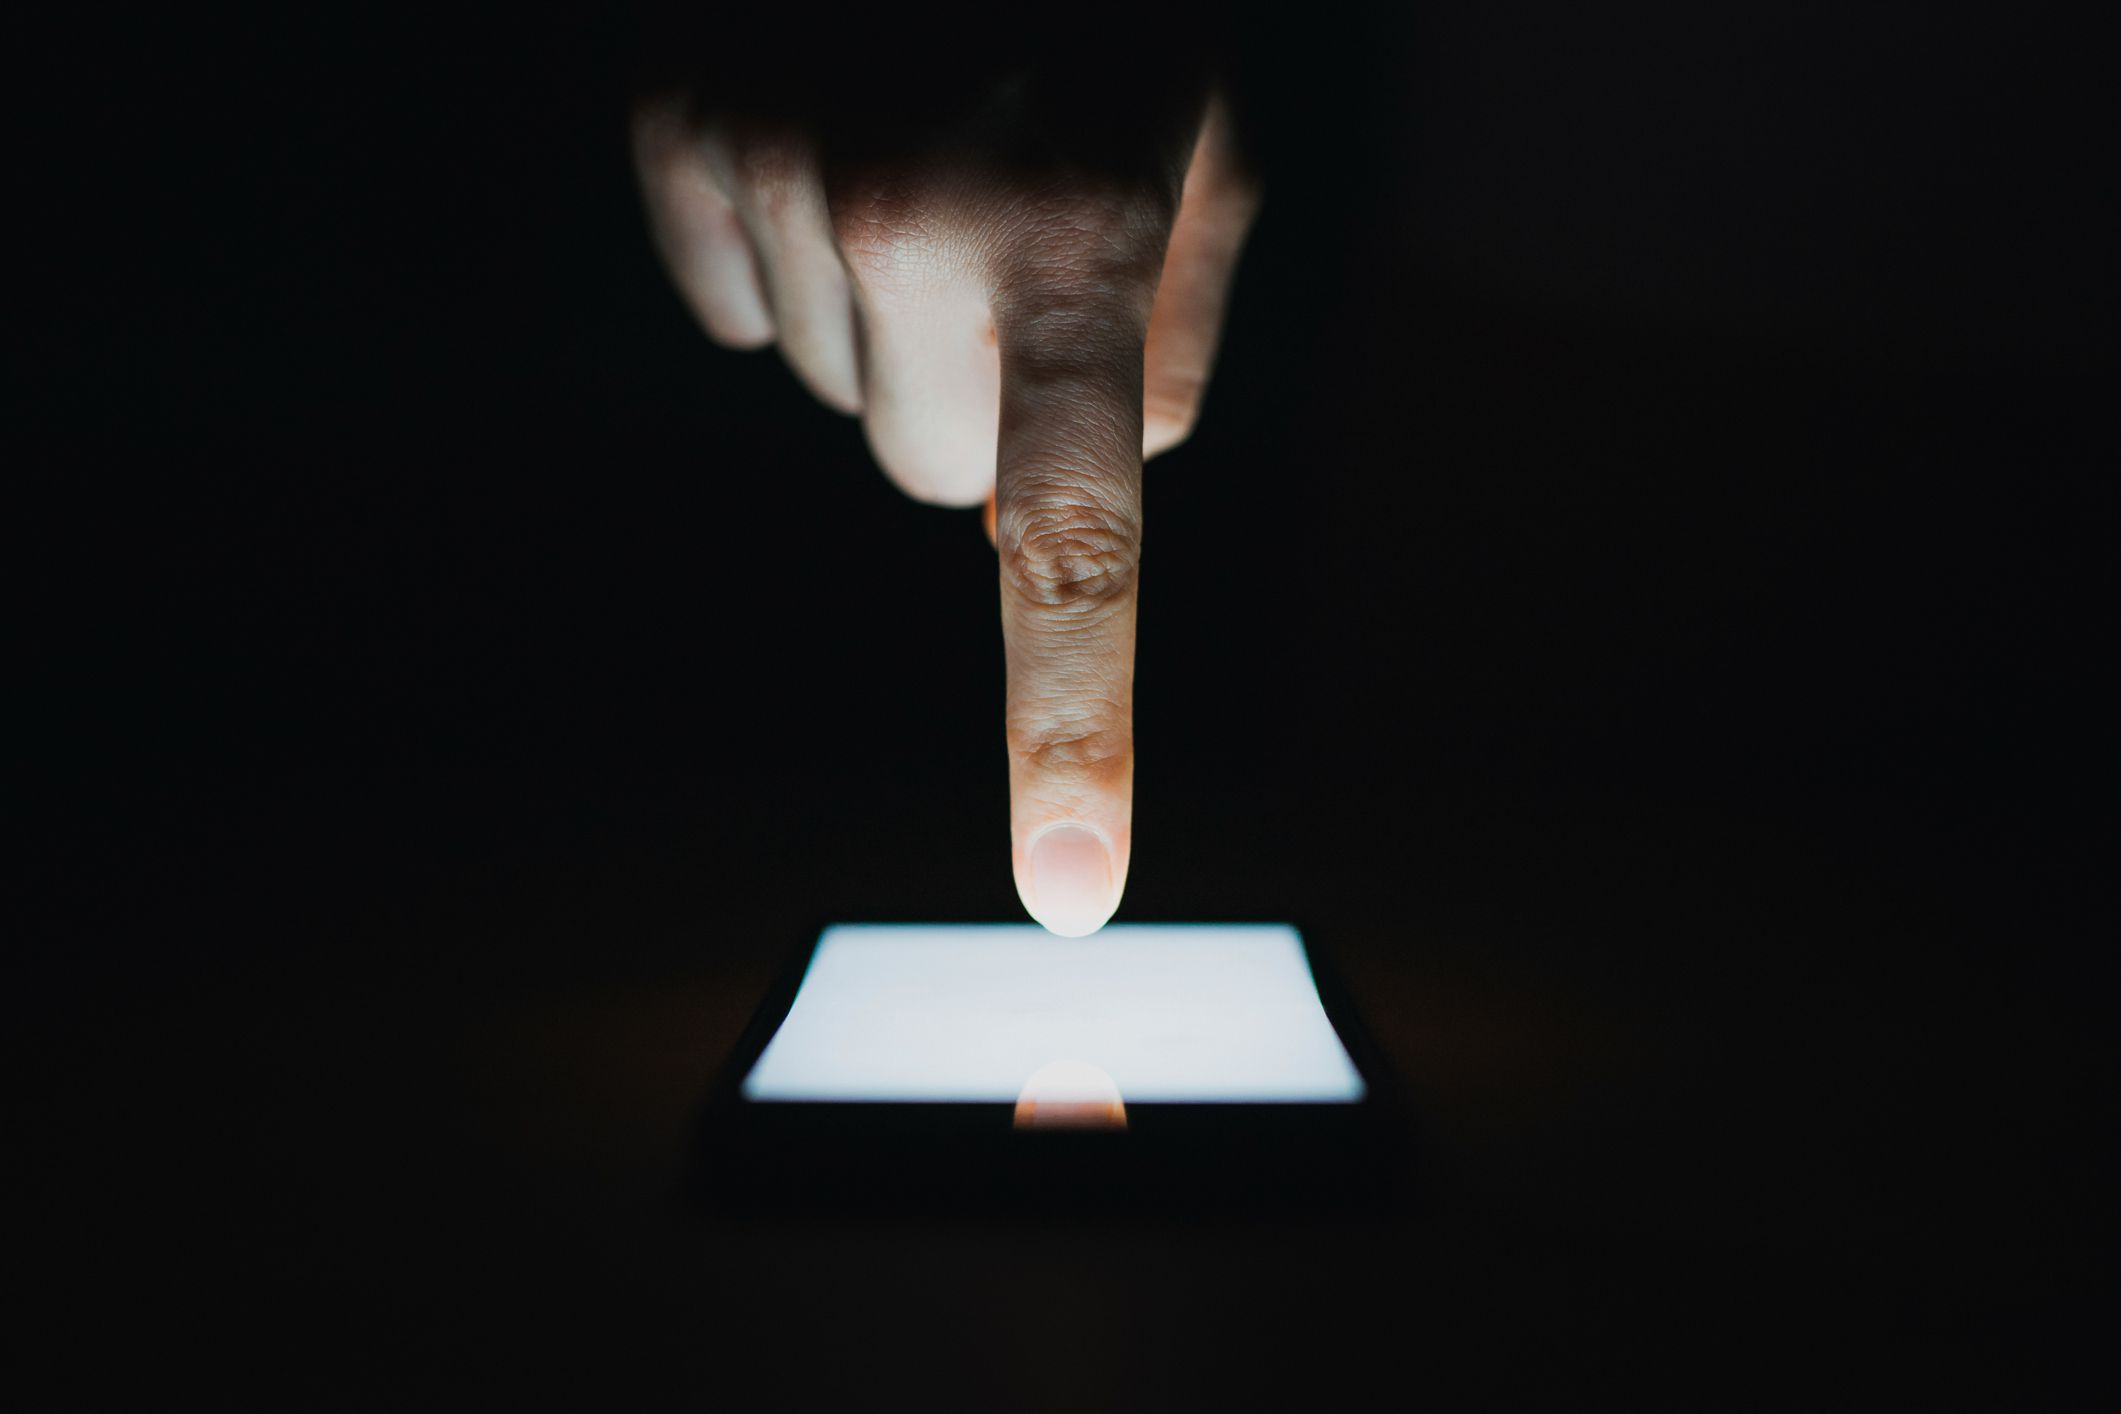 Close up of a hand using a smartphone in the dark